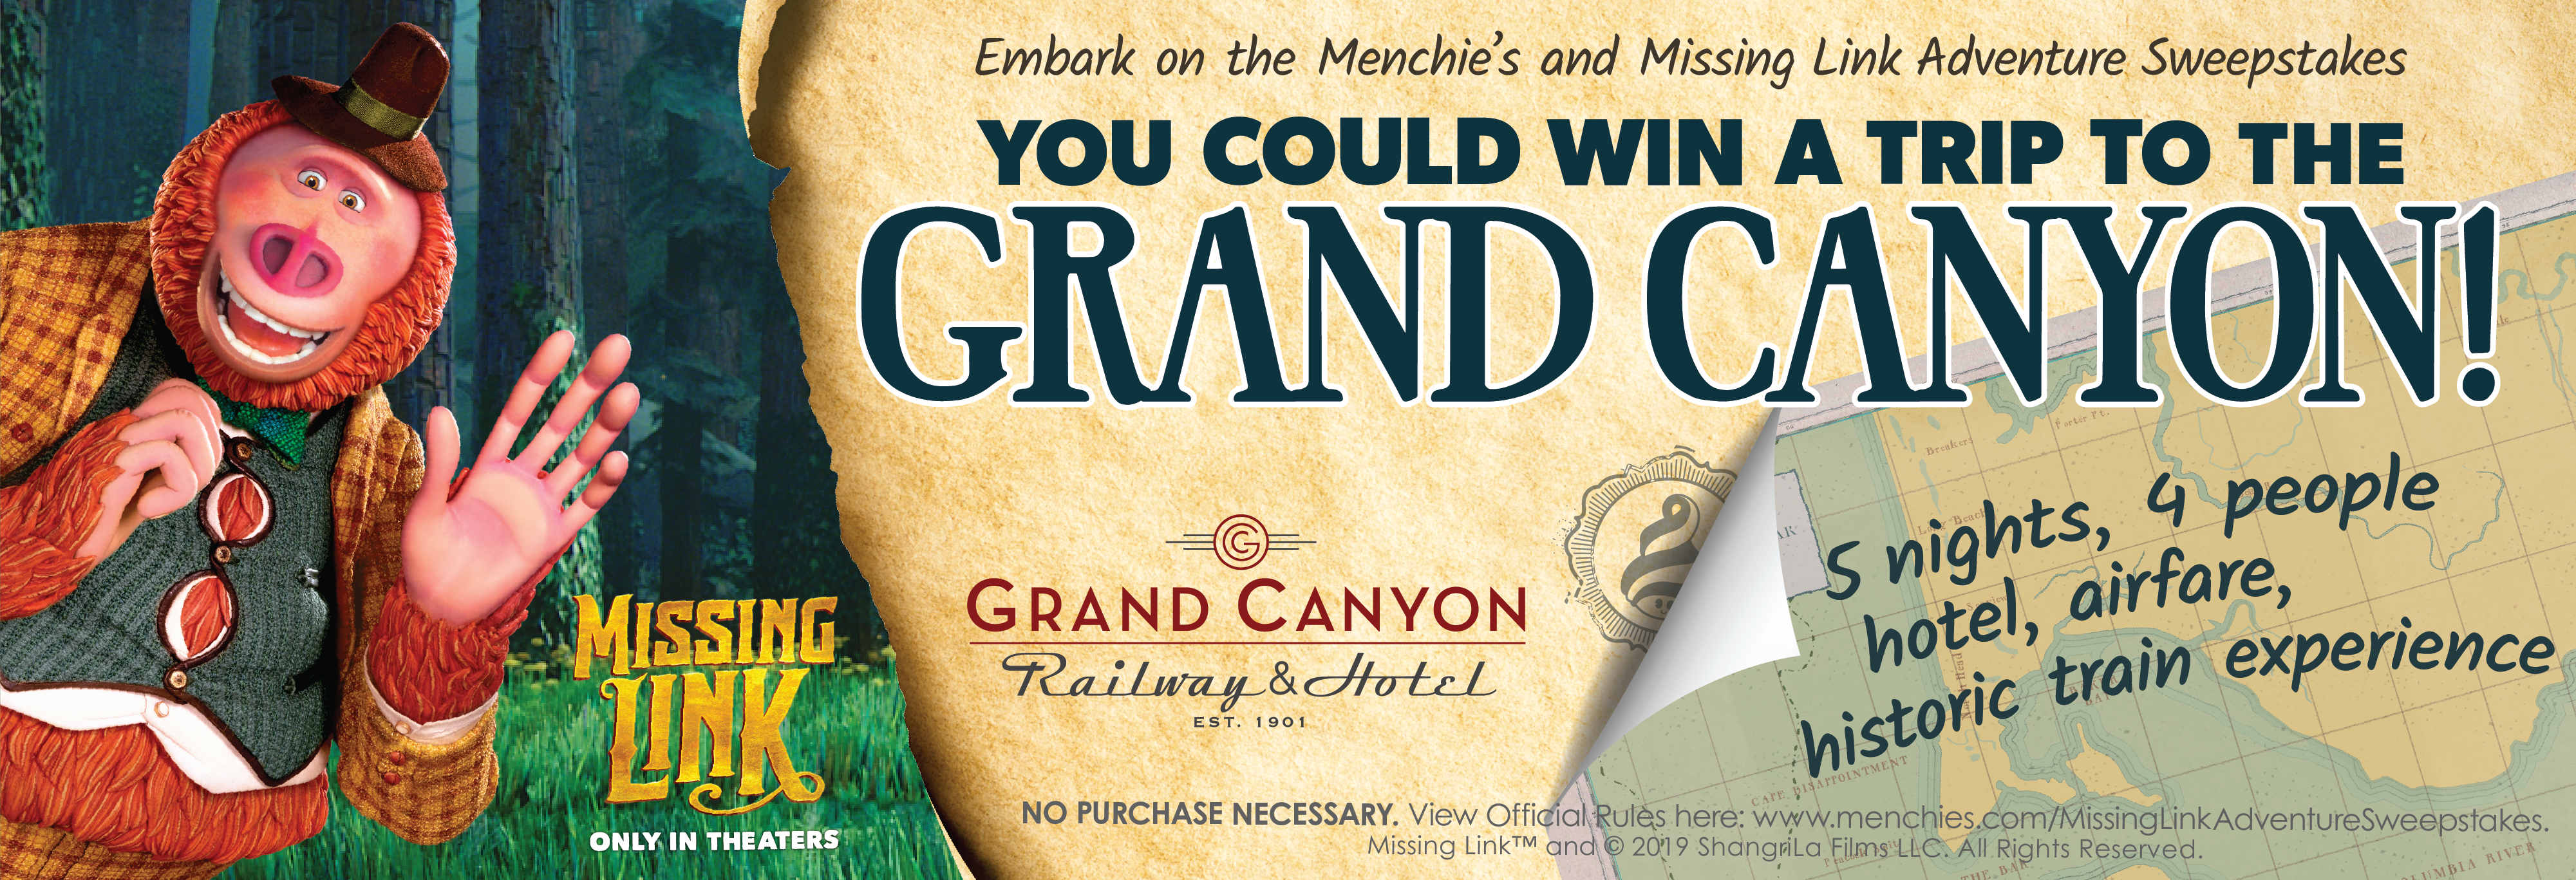 Missing Link Sweepstakes. Embark on the Menchie's and Missing Link Adventure Sweepstakes for a chance to win a trip to the Grand Canyon! 5 nights, 4 people, hotel, airfare and historic train experience.